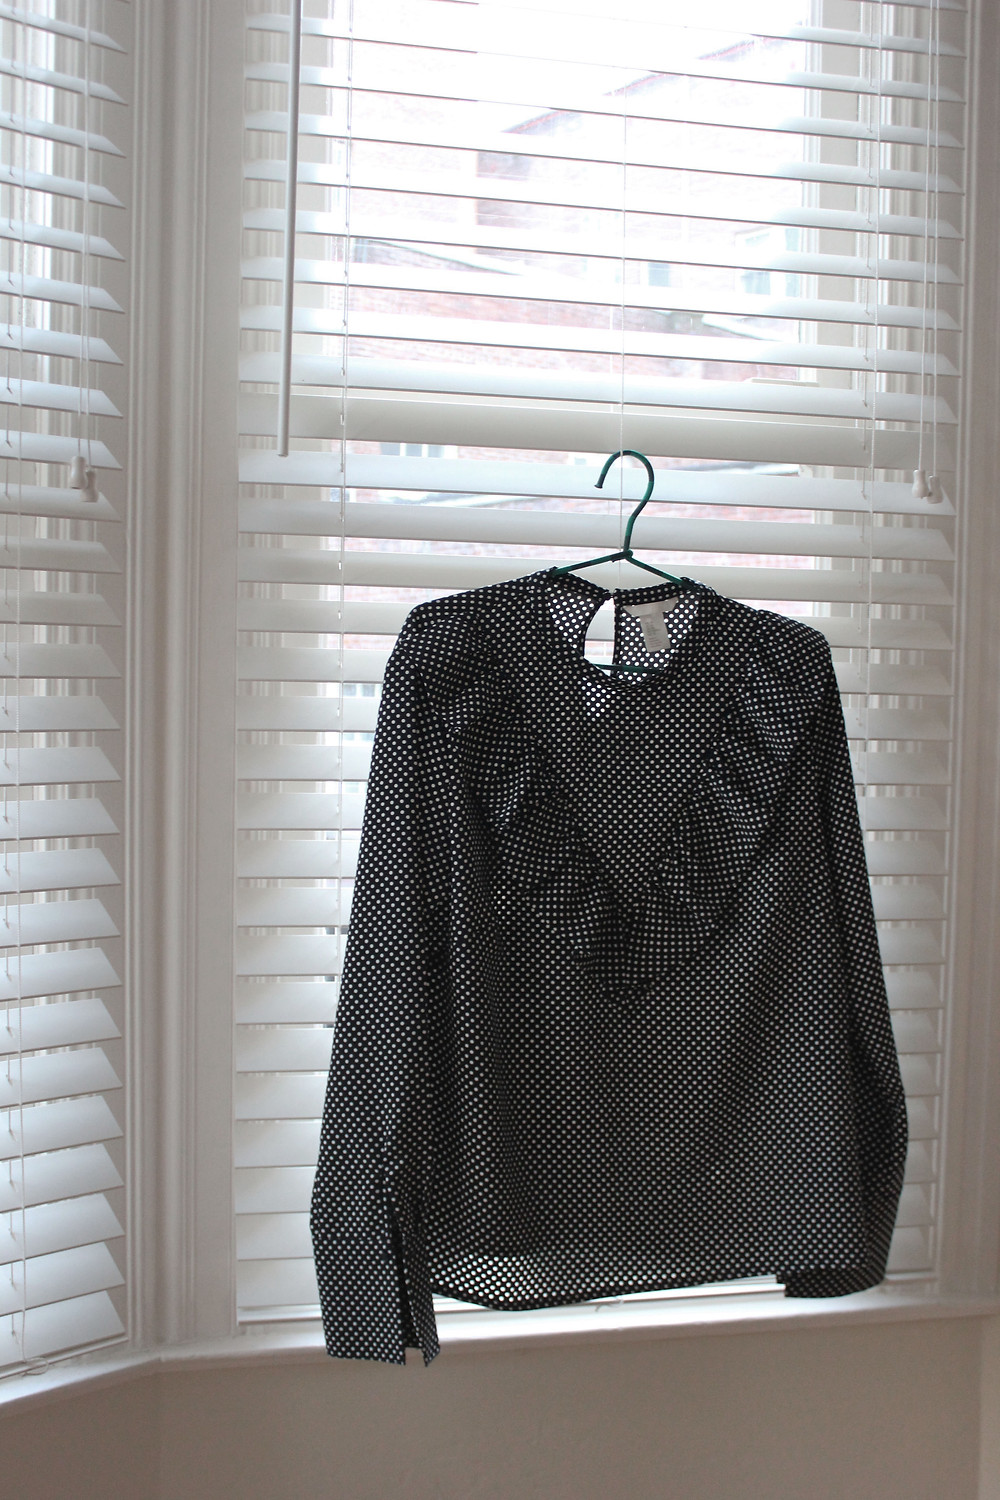 1. Polka dot ruffle blouse I got this top for $10 in H&M just before christmas as a last attempt to get something new for christmas day. I thought it was a bargain and liked it a lot but didn't thing it was special enough for christmas day. Alas I didn't find anything else and stuck with it, turns out I actually really love it and felt comfortable in it all day. I'm loving anything with a ruffle at the moment, and the exaggerated sleeves are always a winner in my book. I feel it can be smart or casual and I can't wait for it to get a bit warmer to pair it with a leather jacket and white trainers.